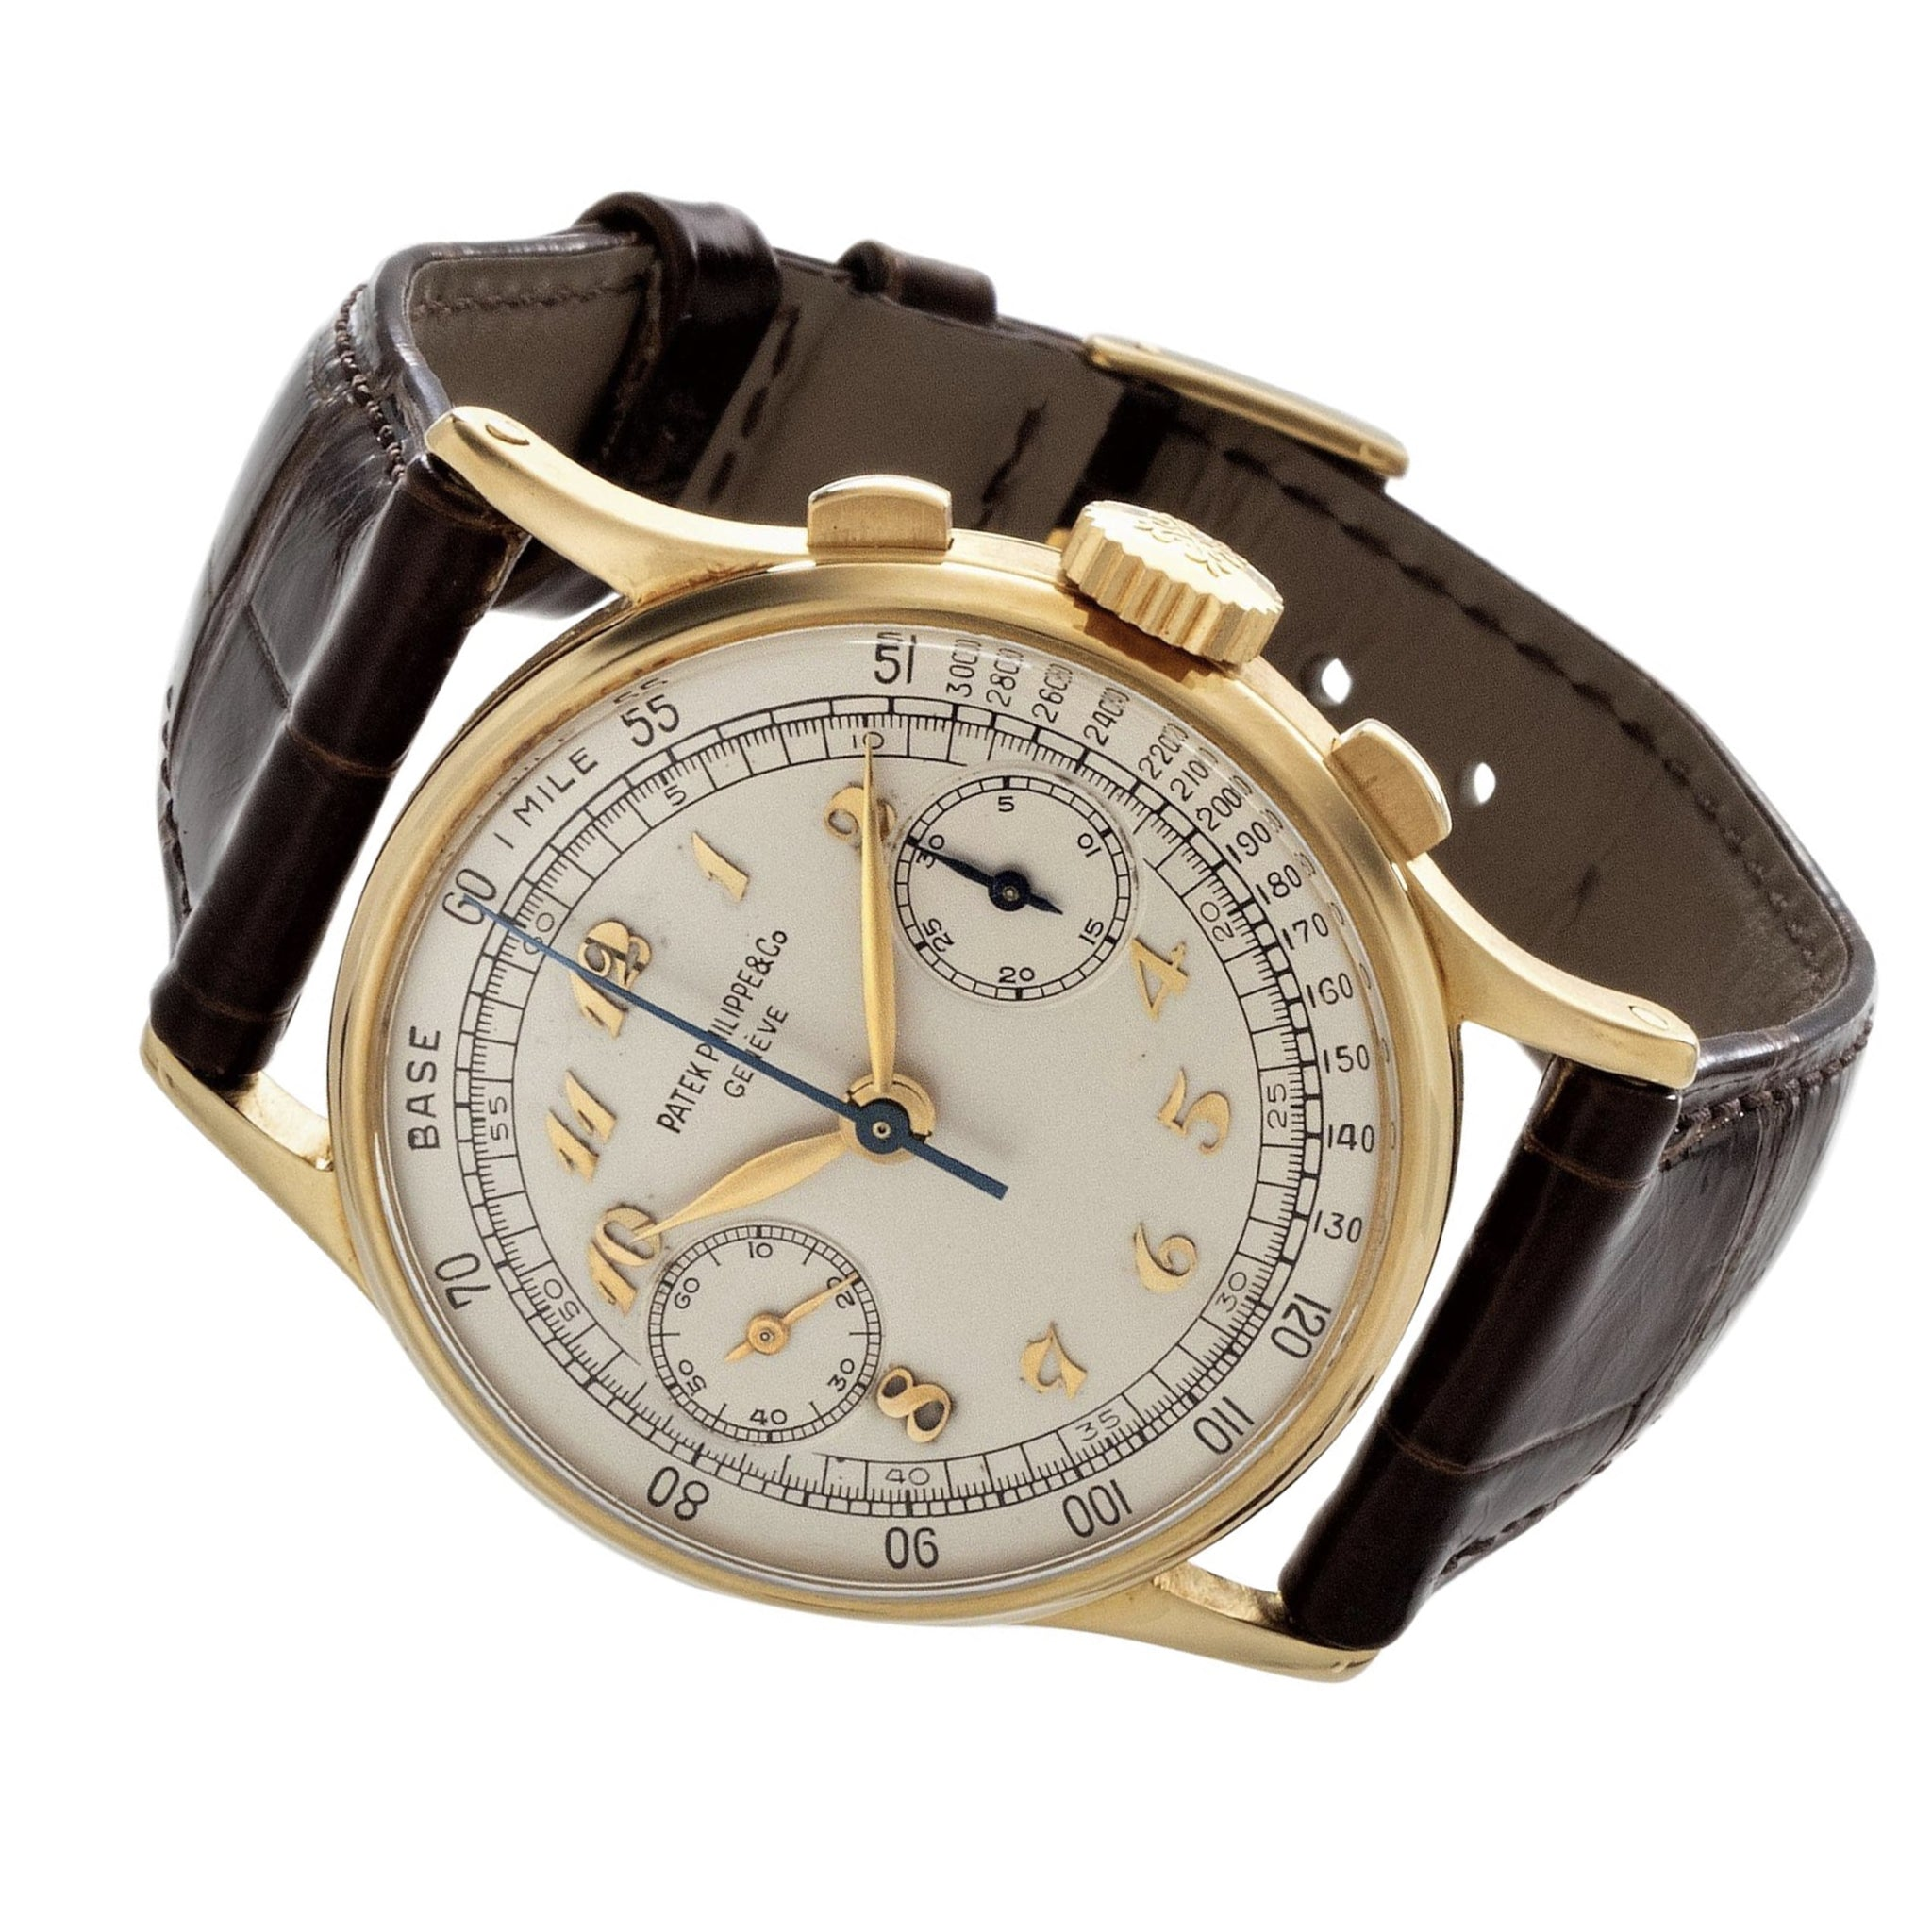 Patek Philippe 130J Chronograph Watch Circa 1944